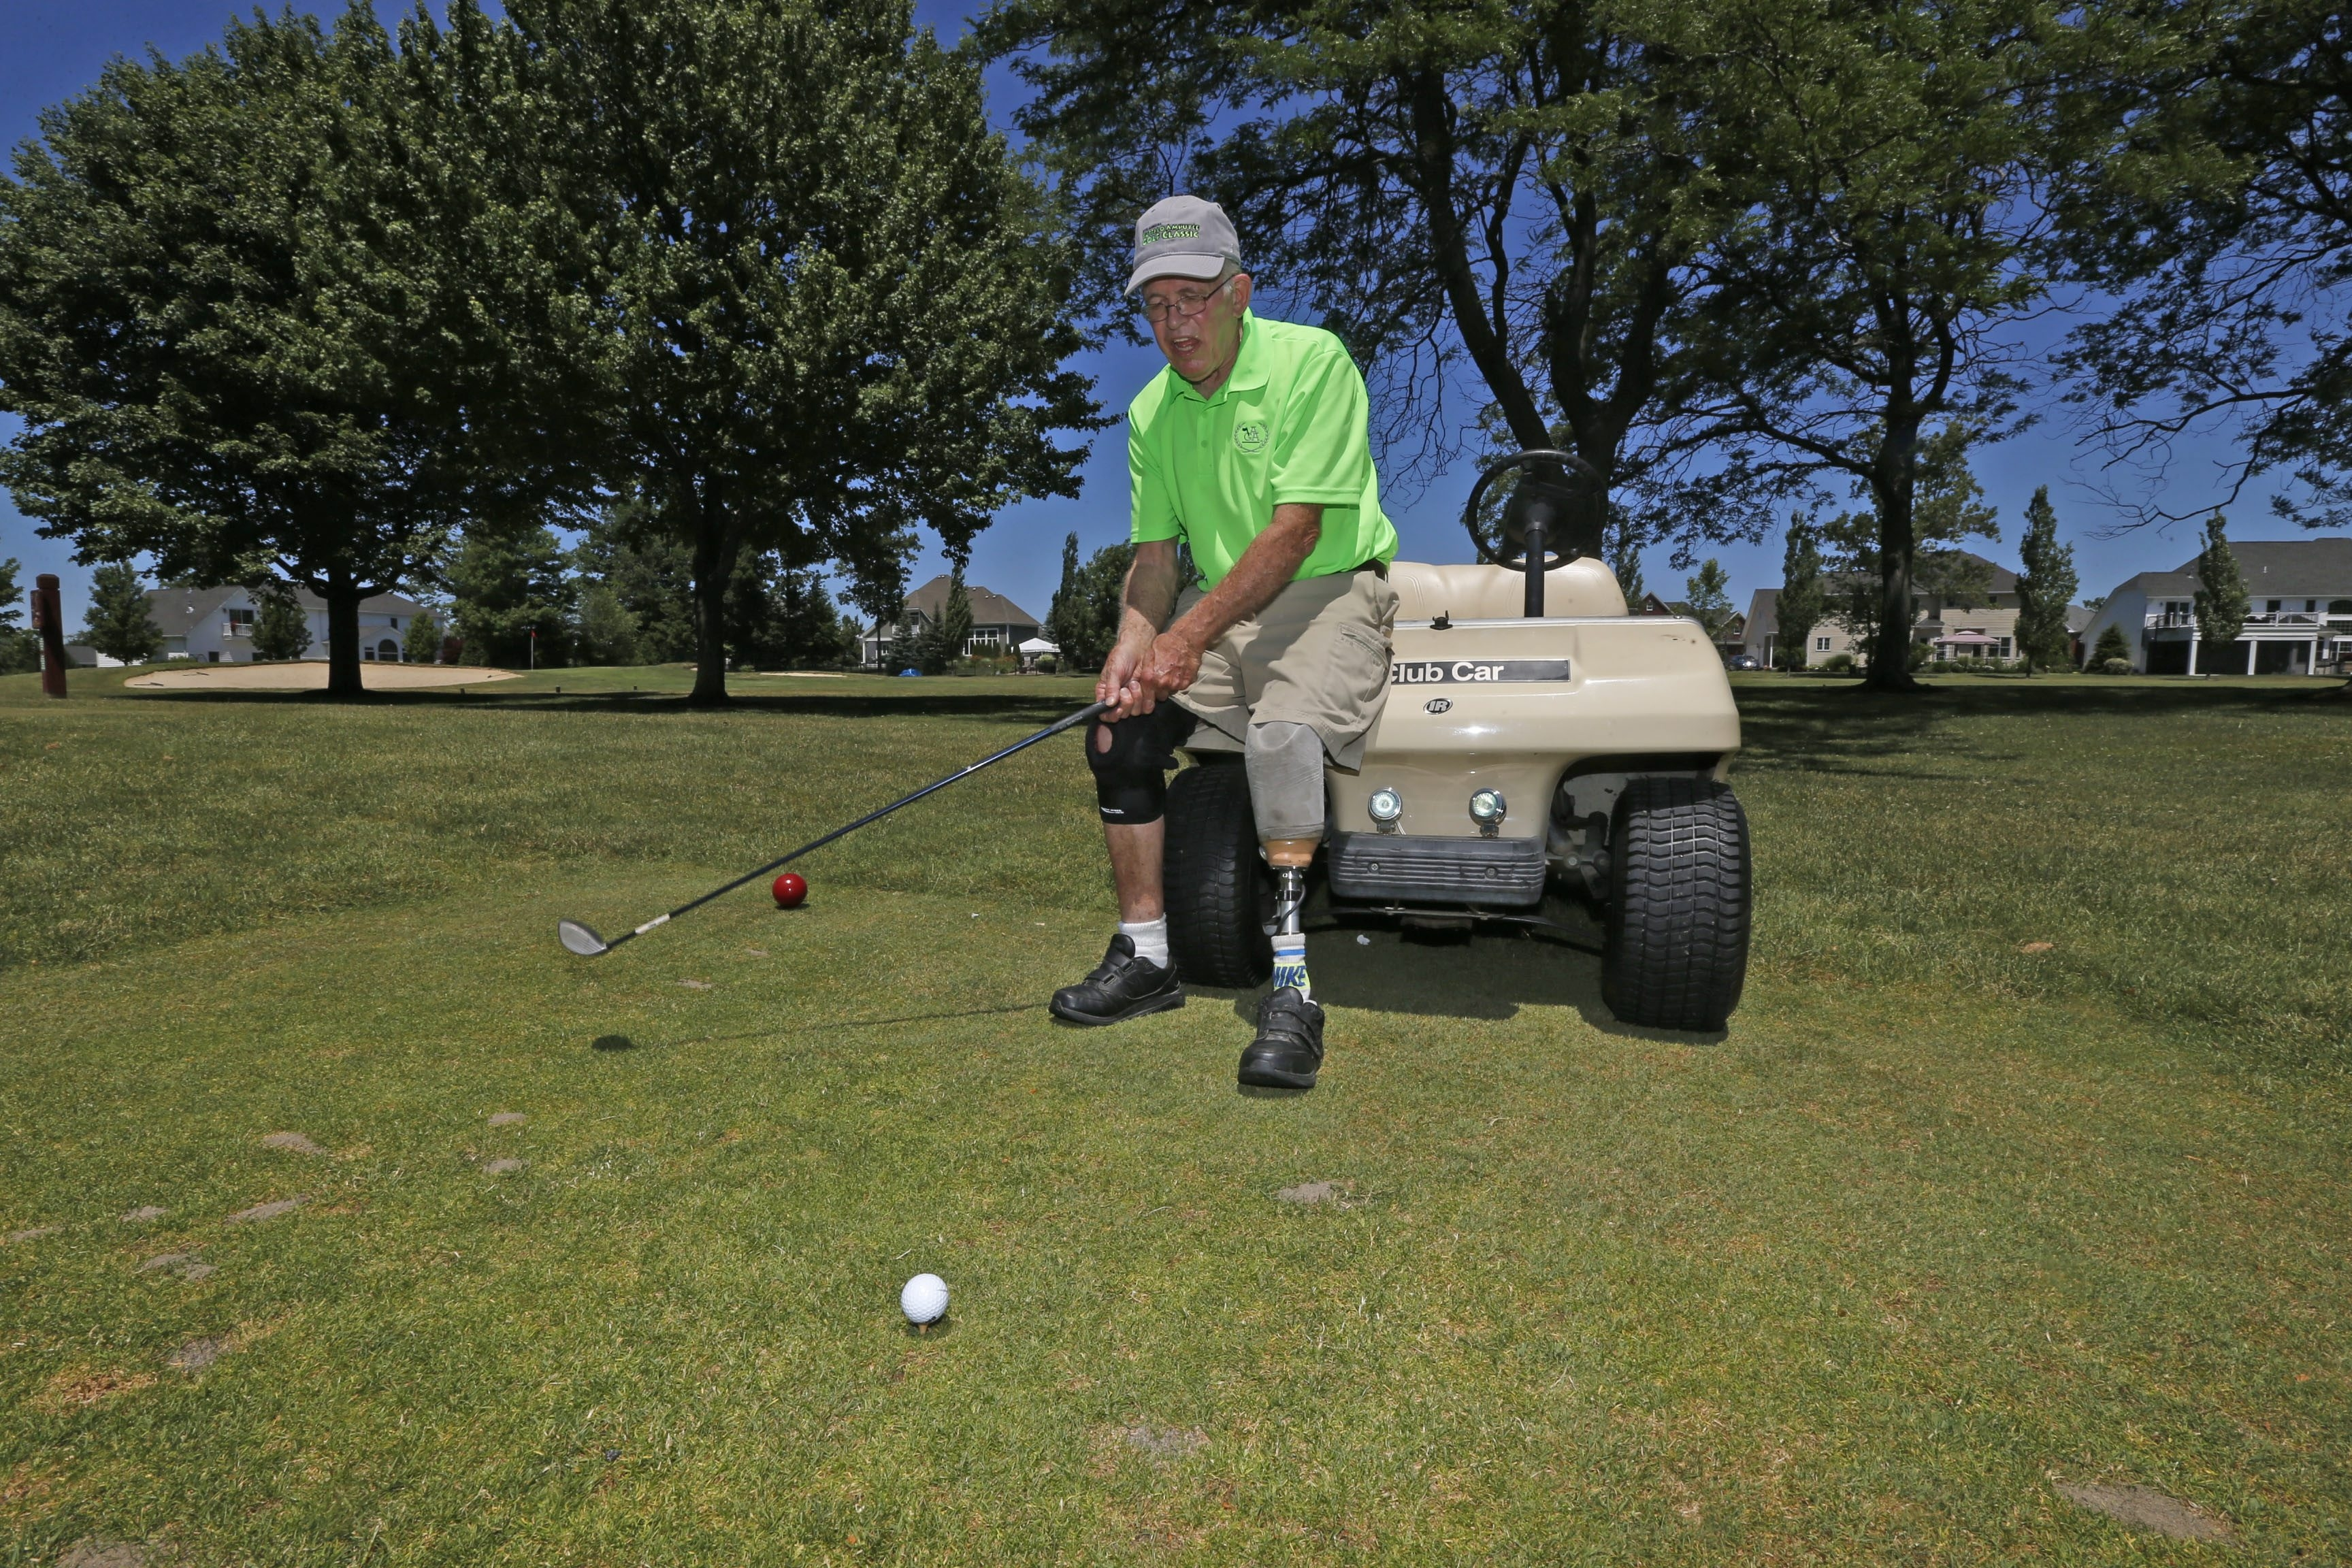 Tourney founder and past 19-year club pro Peter Fenn uses the front of his gold cart to stabilize himself as he tees off during the Eighth annual Buffalo Amputee Golf Classic on Monday at Brierwood Country Club.